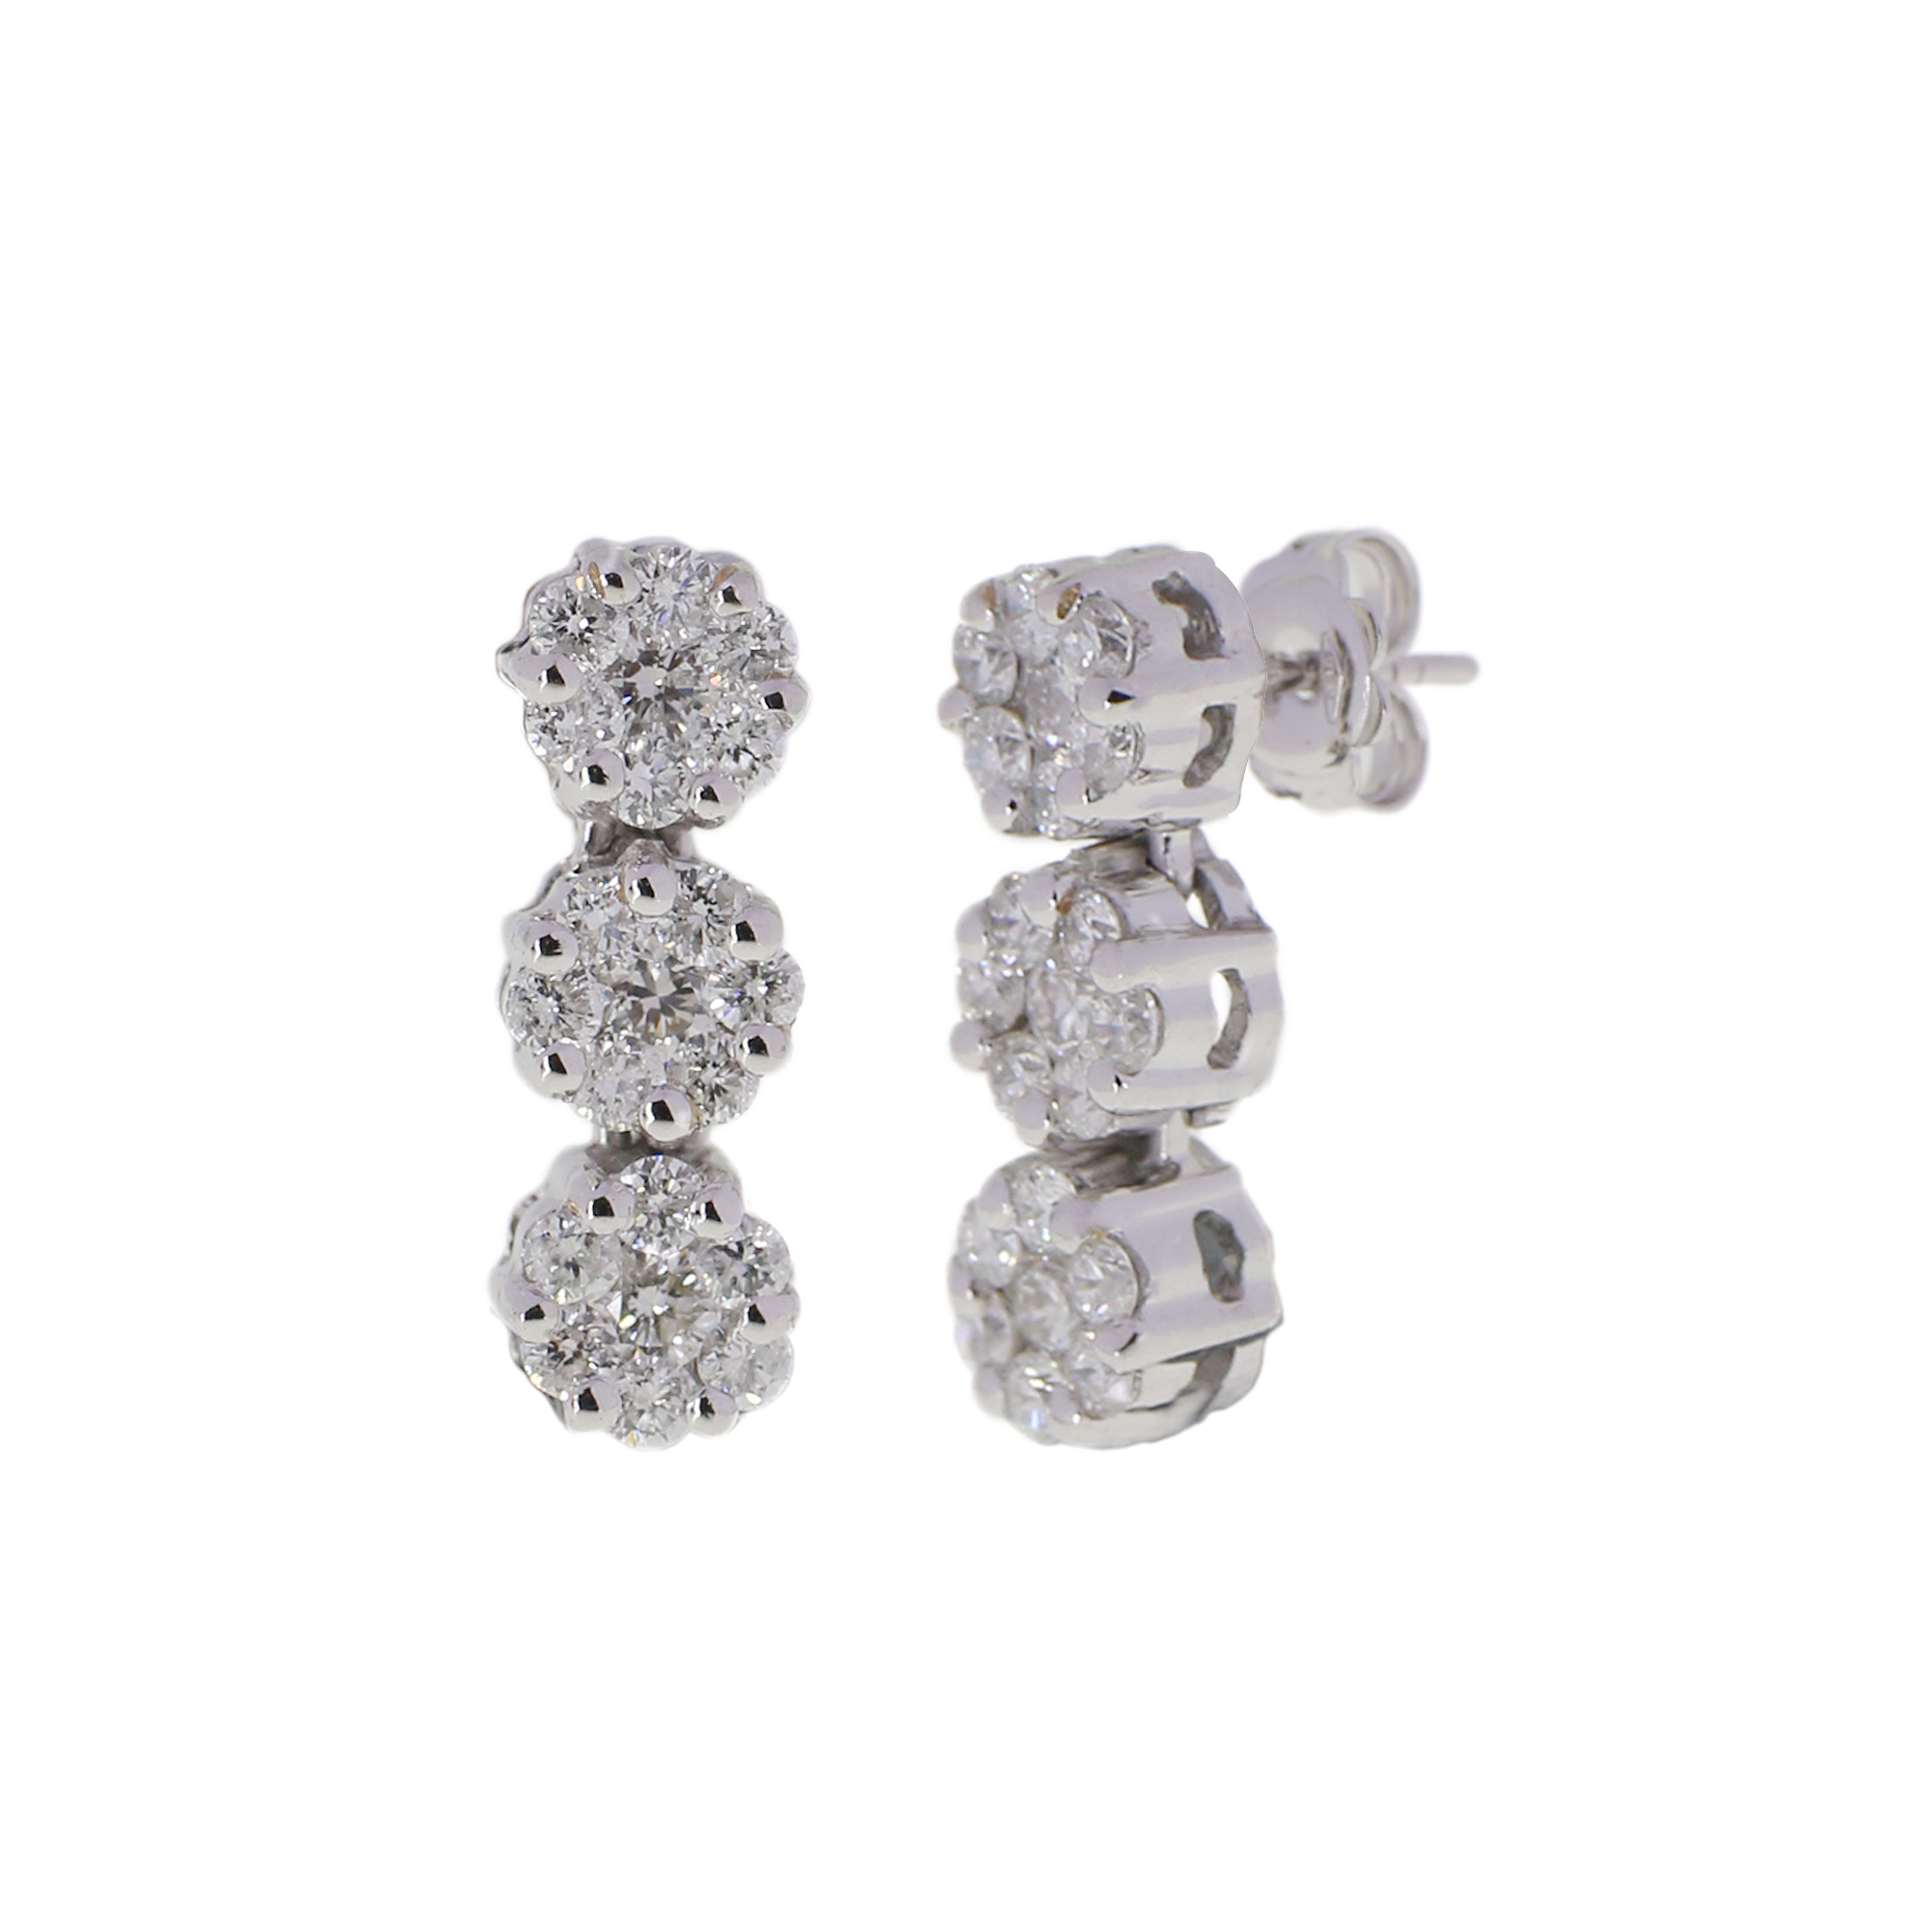 Fiorlini Earring PSE0010